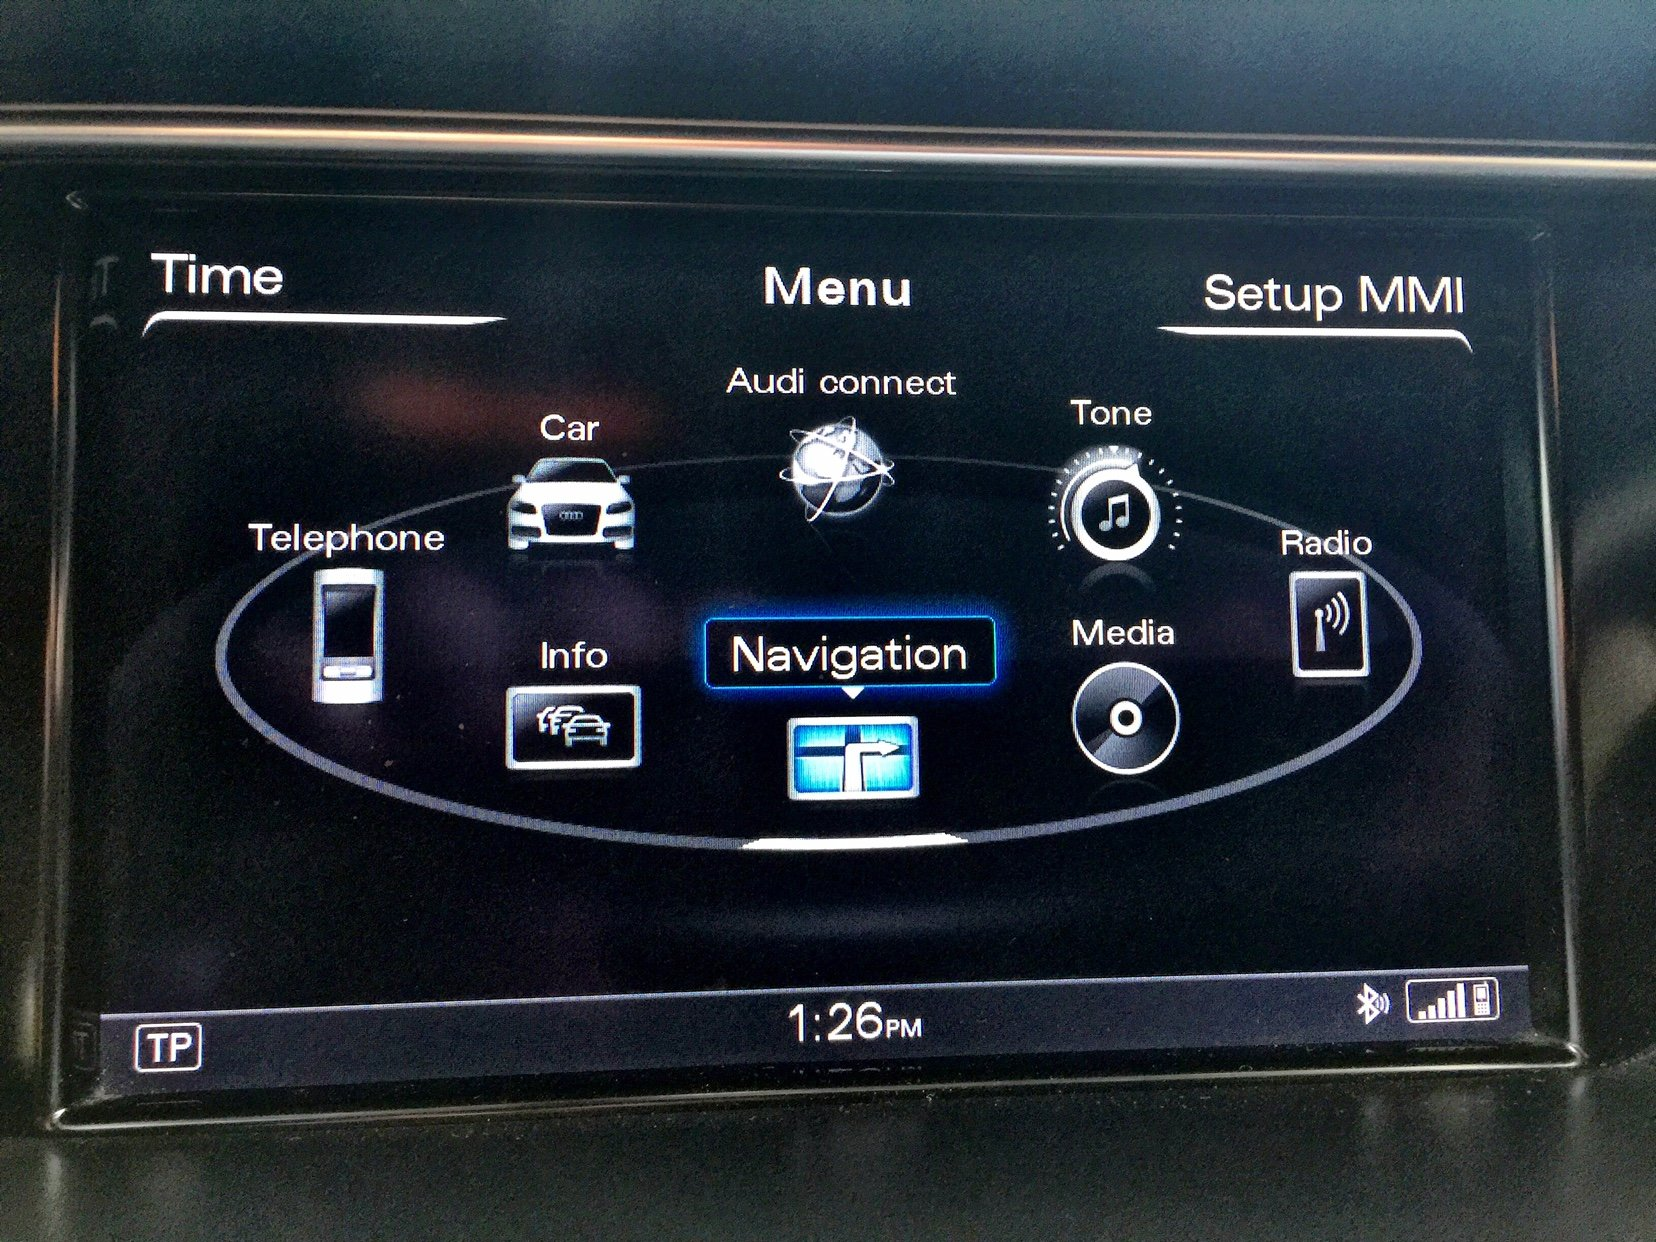 New Google MMI installed in 3G car 100% working | Page 48